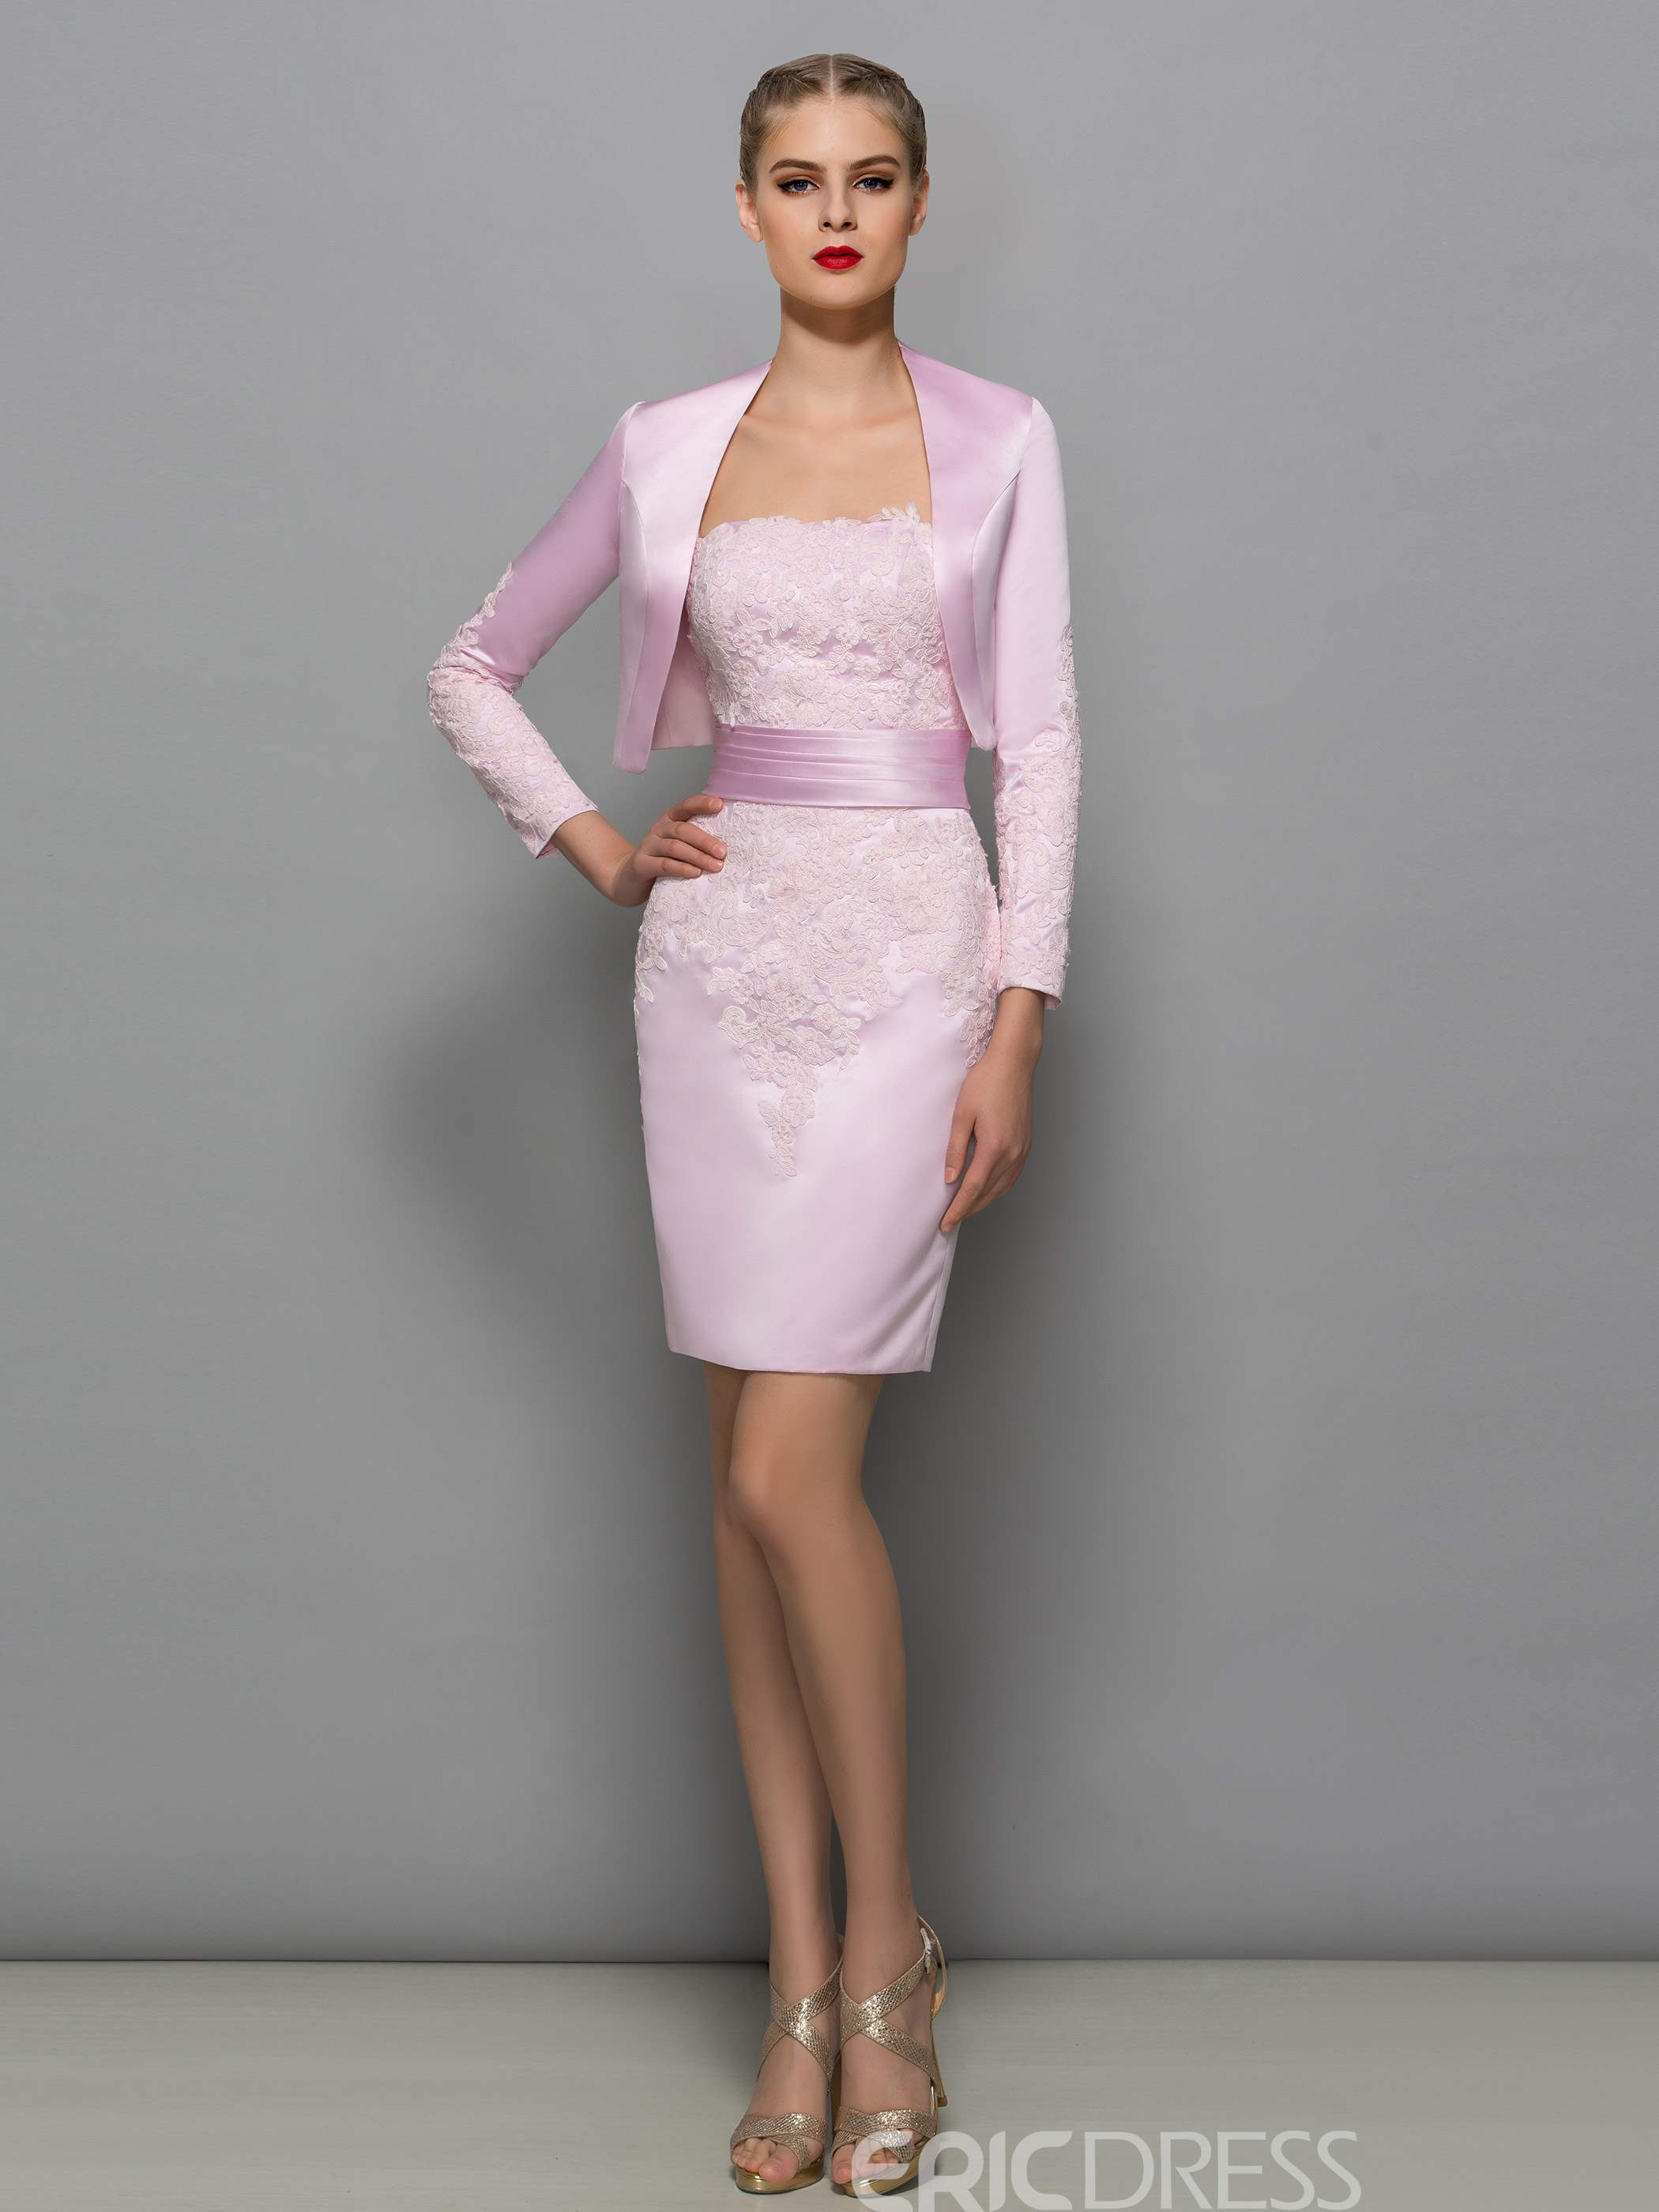 Ericdress Elegant Strapless Appliques Short Mother Of The Bride Dress With Jacket